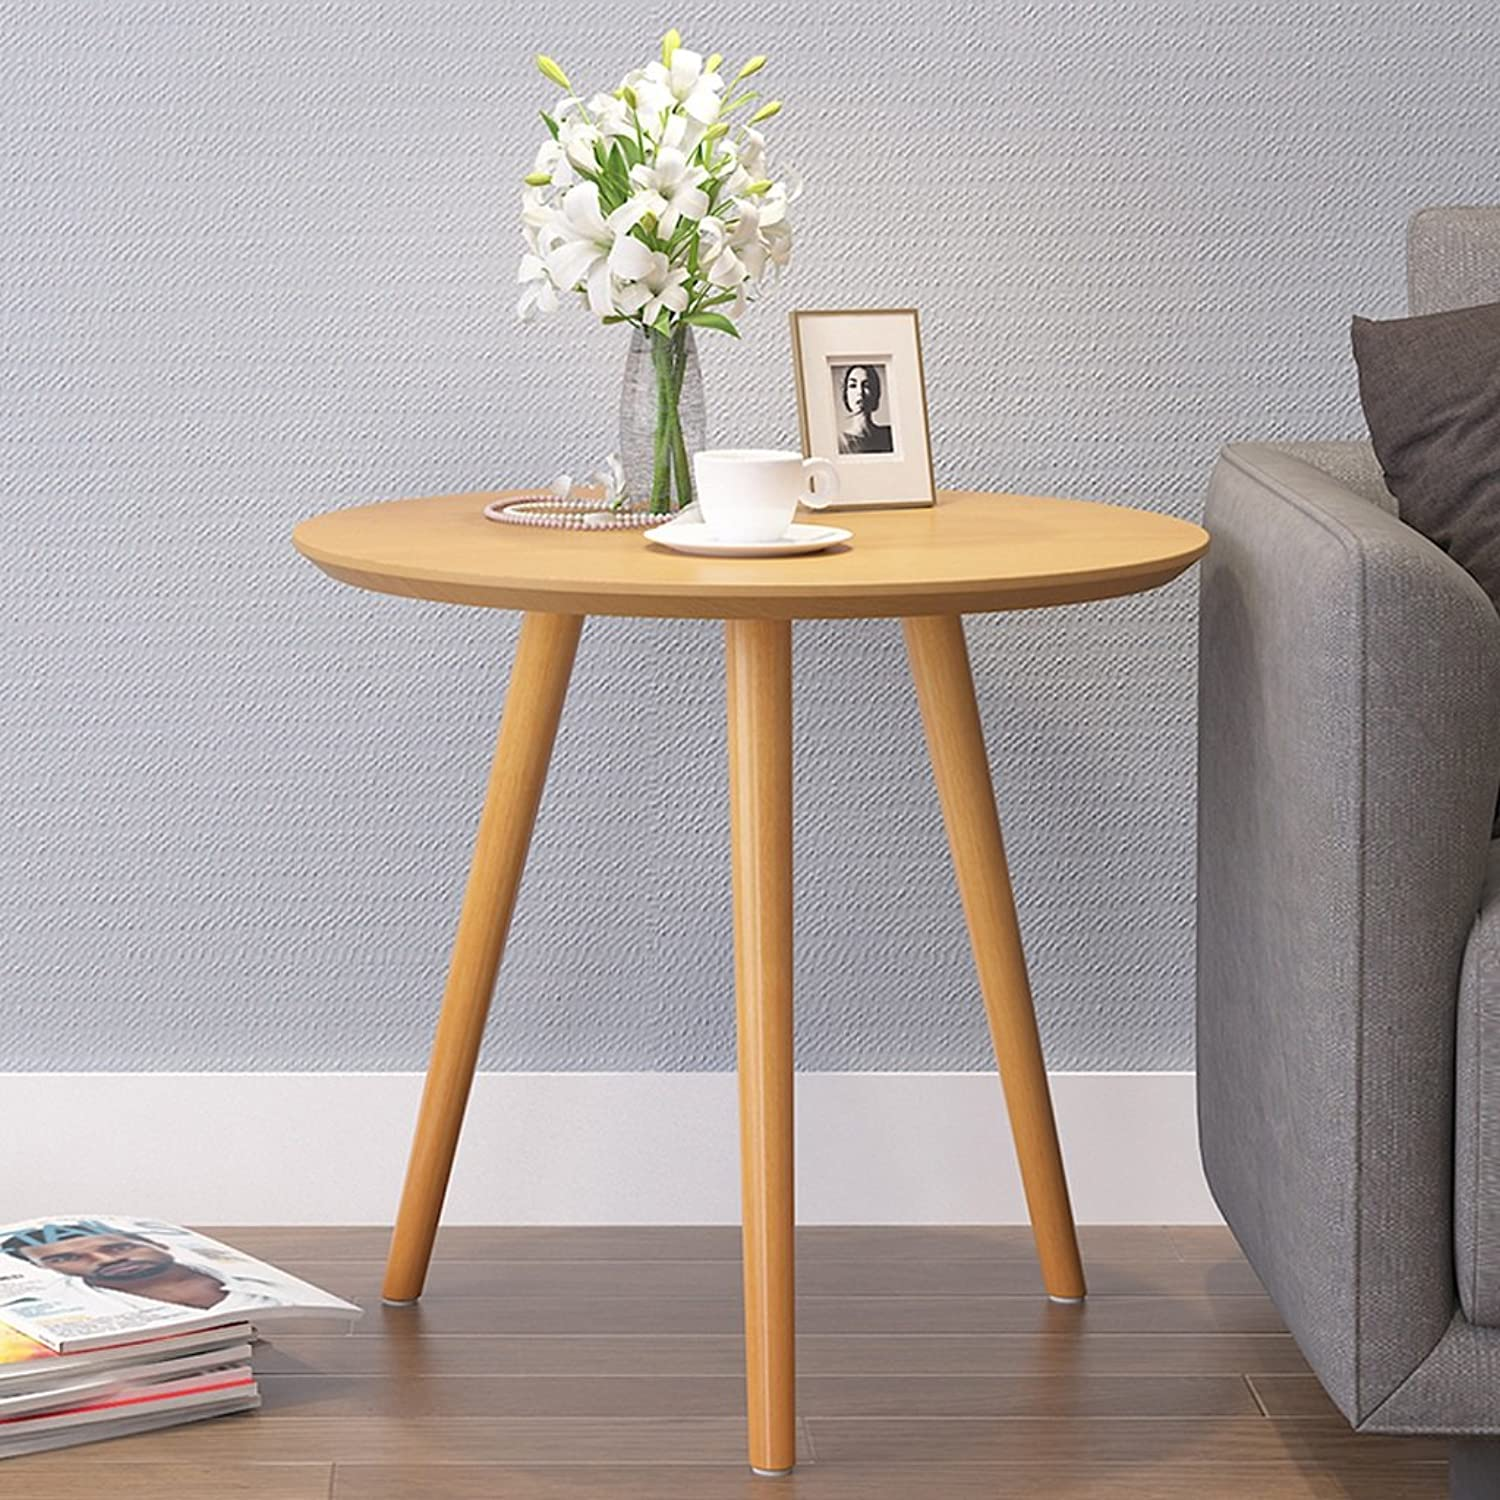 Coffee Table Table Round Low Table Mobile Small Table Dining Table Leisure Corner A Few Coffee Tables ( color   Wood color )